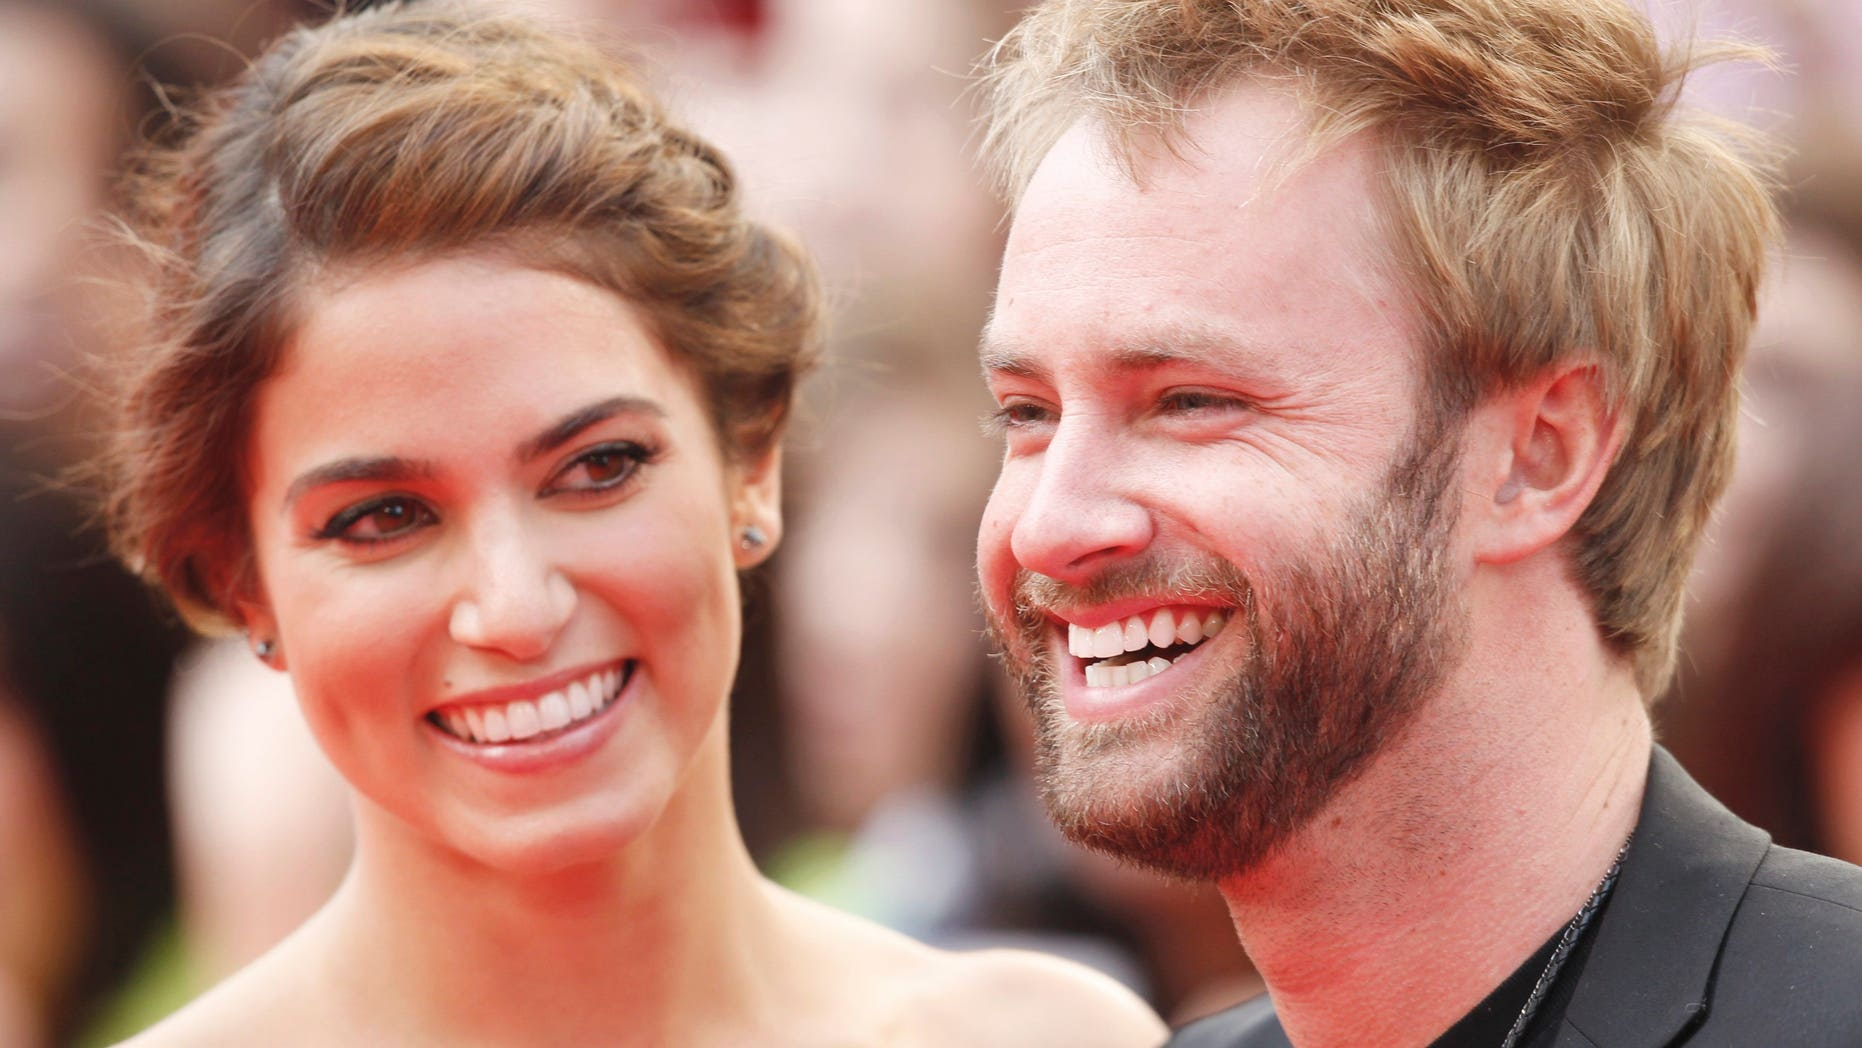 """June 19, 2011. Singer Paul McDonald and actress Nikki Reed from the """"Twilight"""" films arrive at the MuchMusic Video Awards in Toronto."""